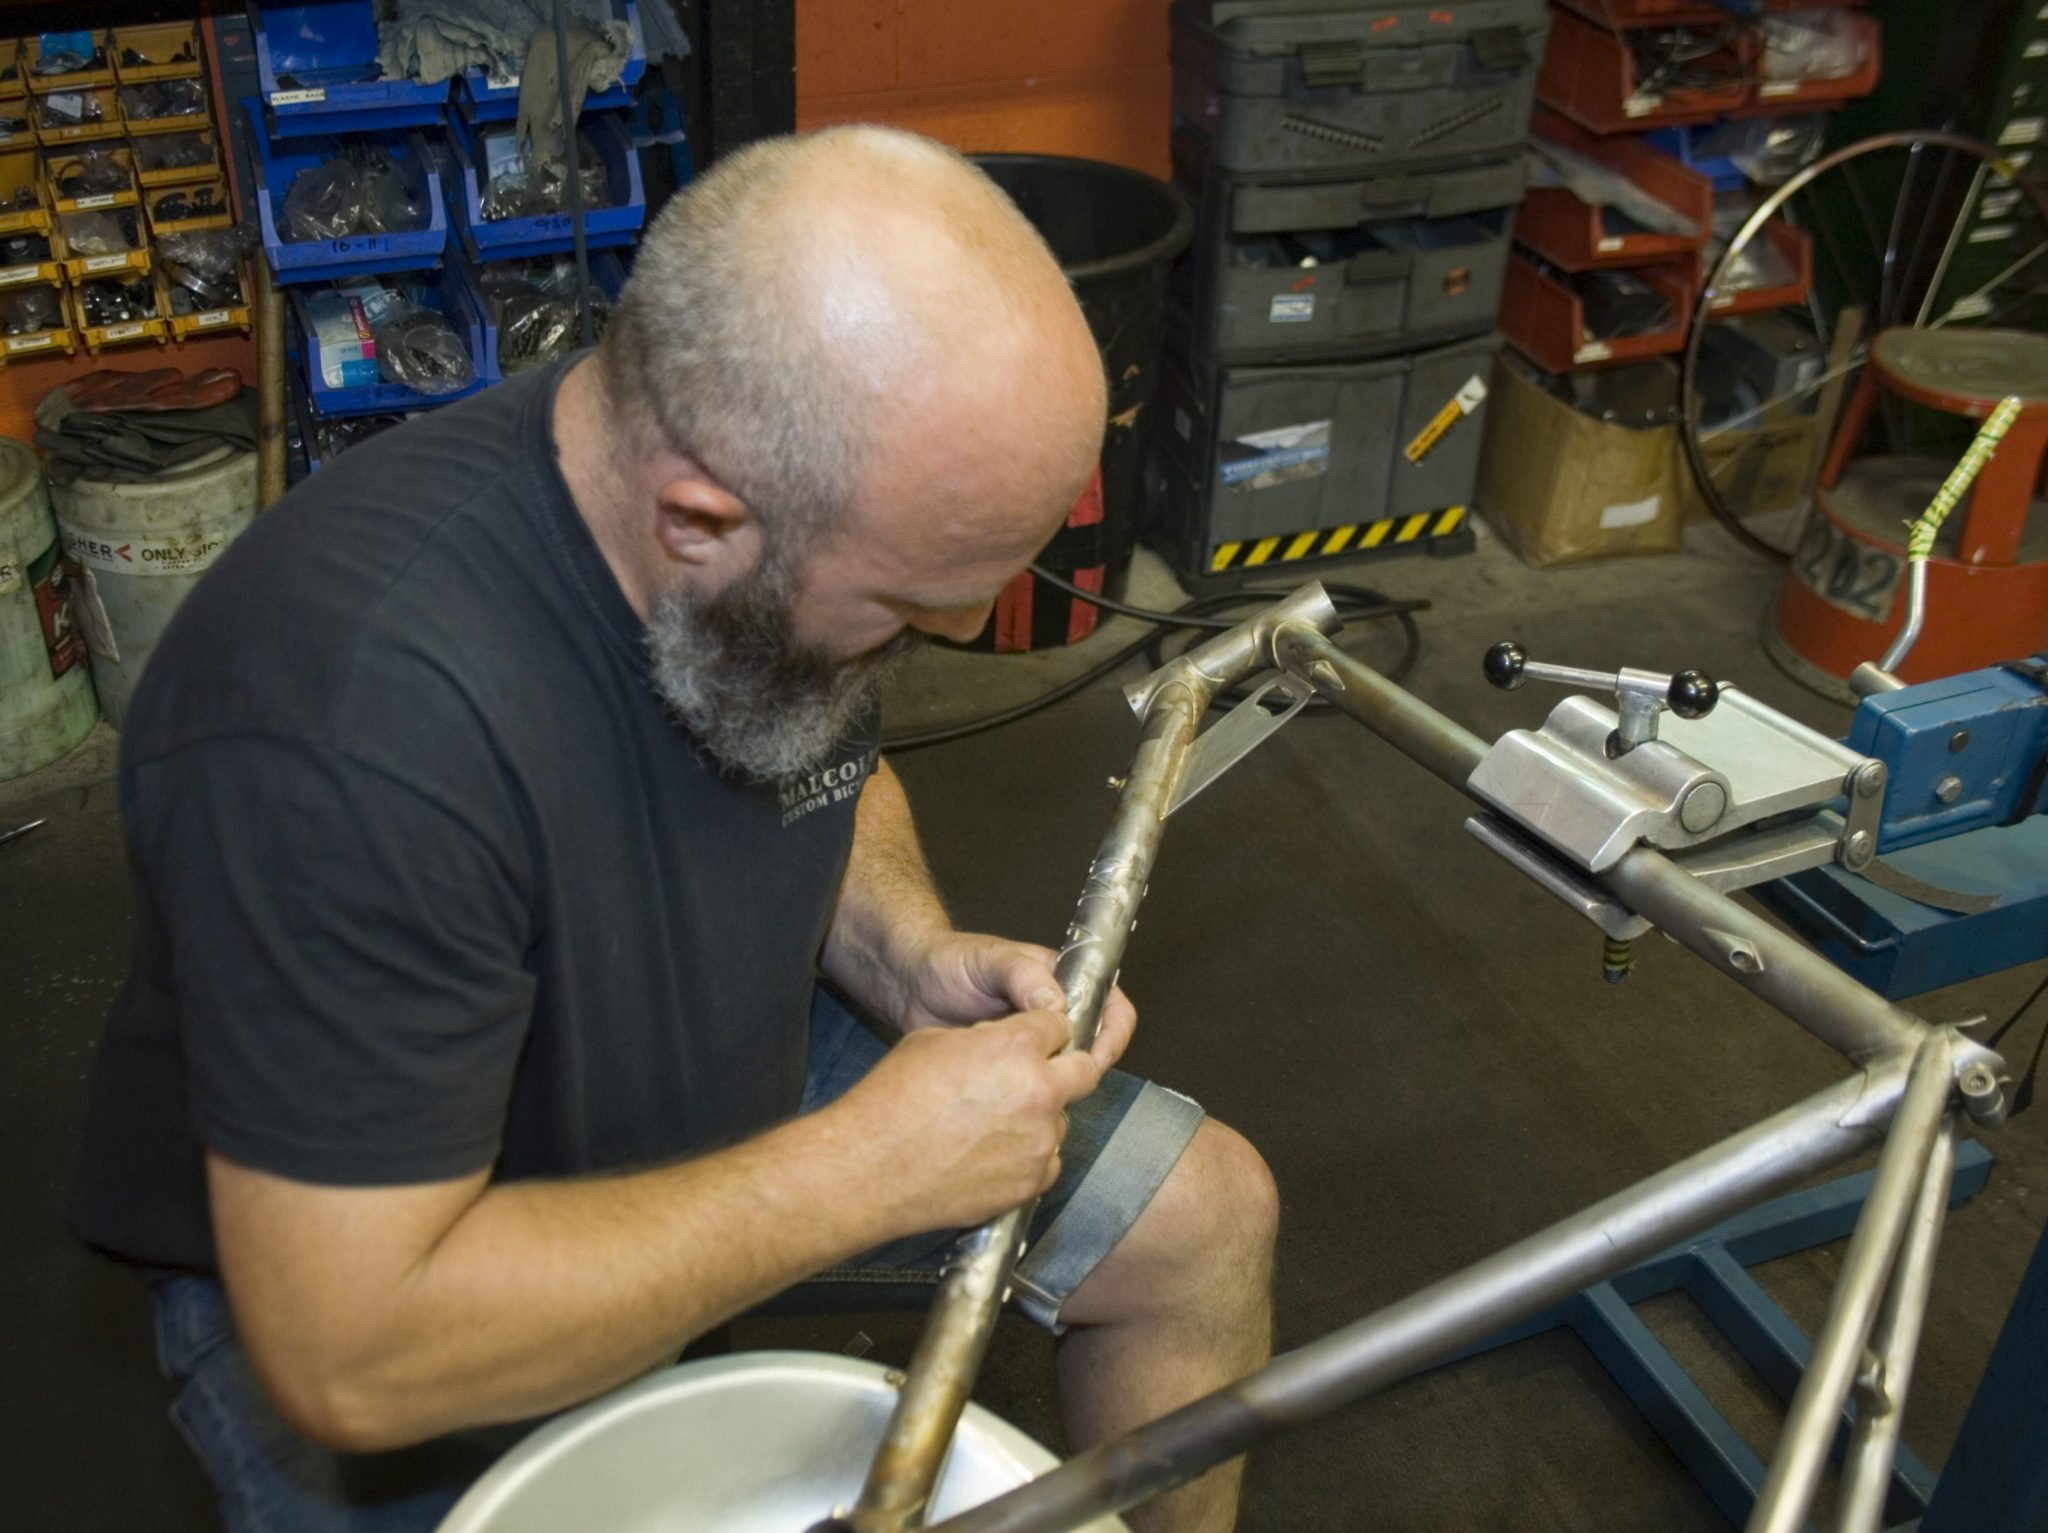 Broken Spoke: The rise and fall of the bespoke frame builder